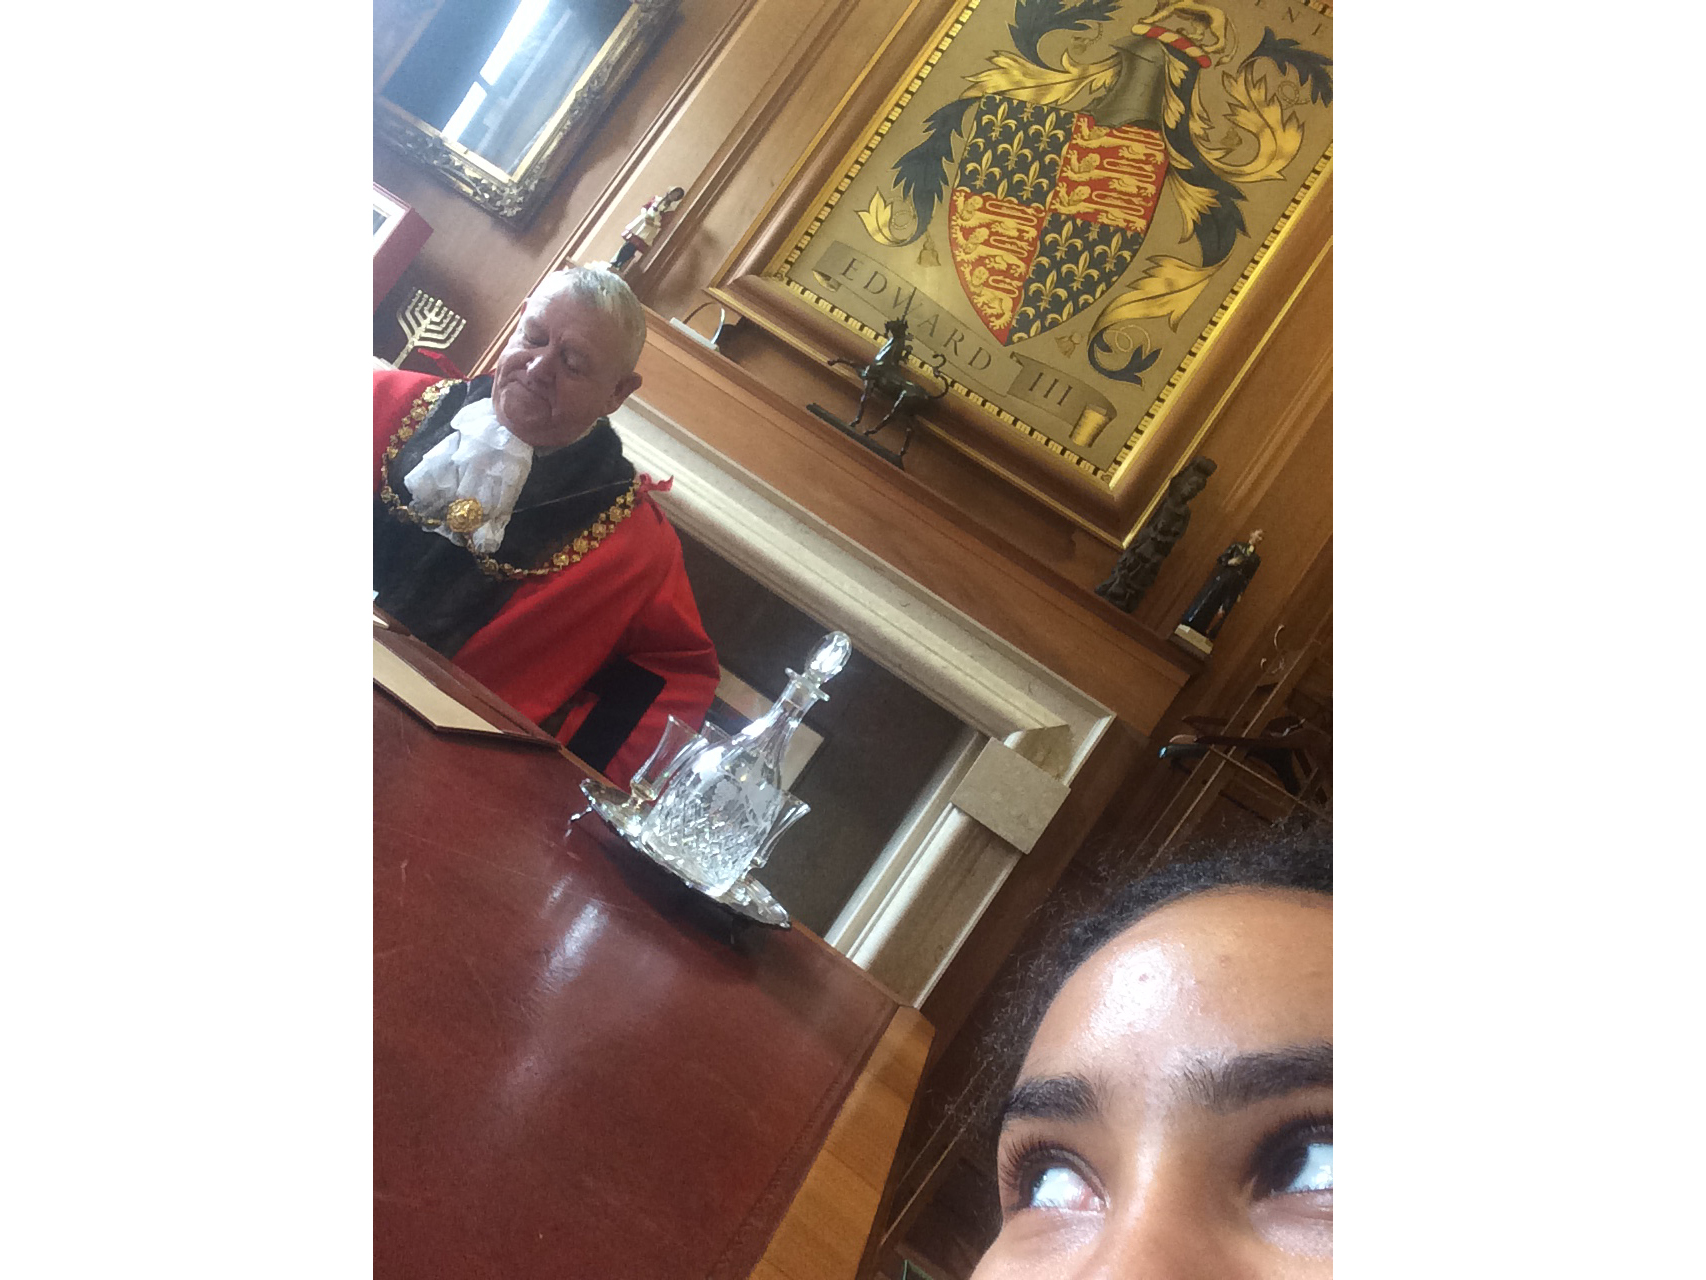 sneaky selfie with lord mayor